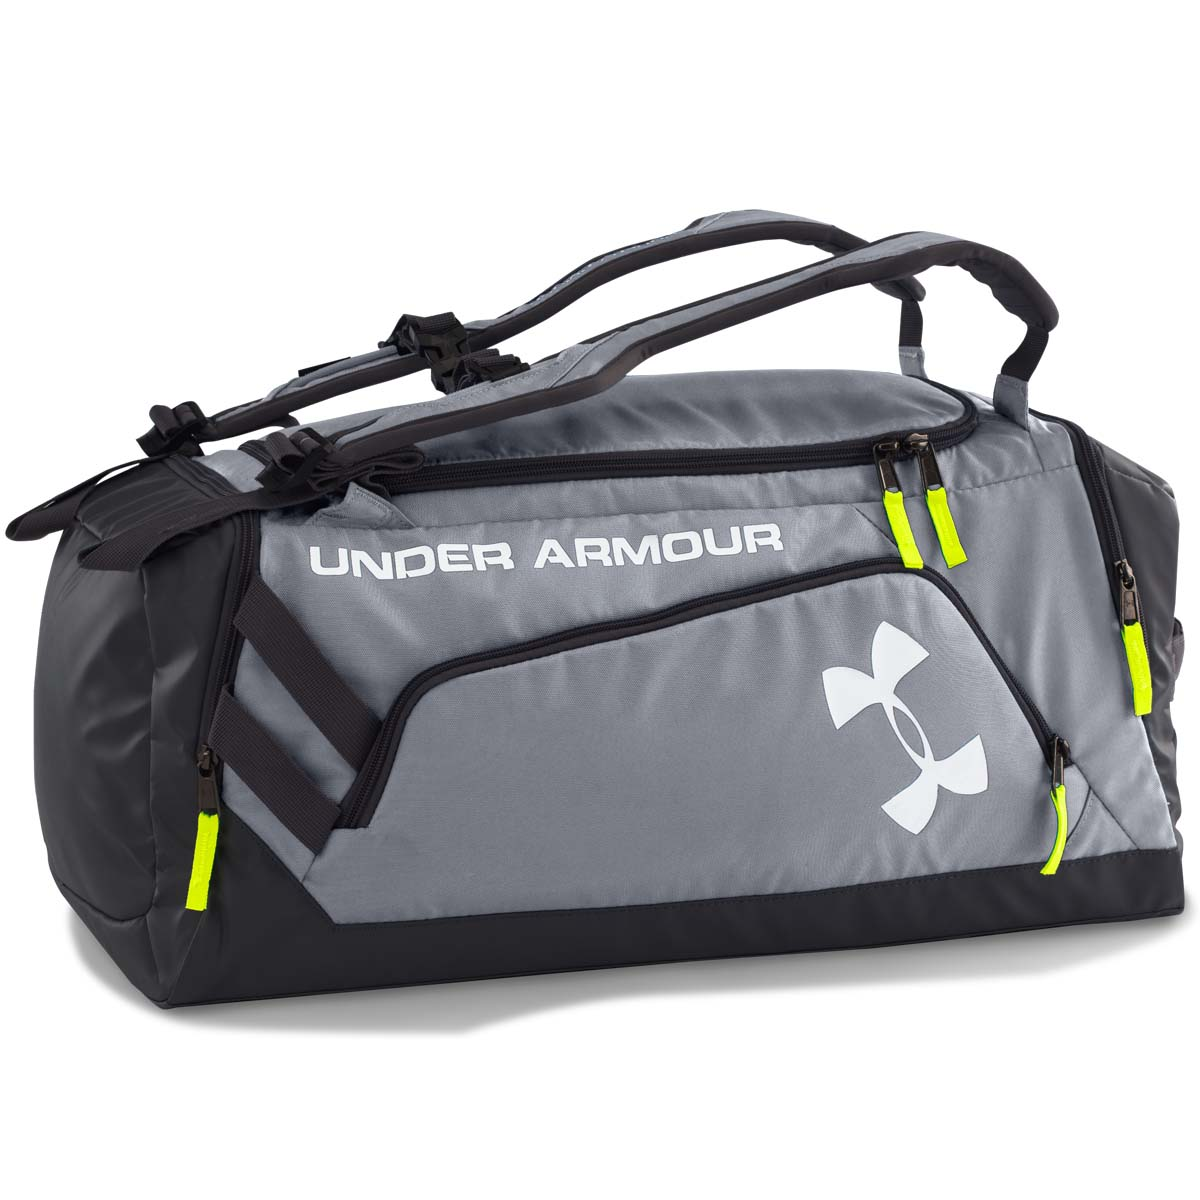 273d9c360578 under armour travel bag cheap   OFF52% The Largest Catalog Discounts